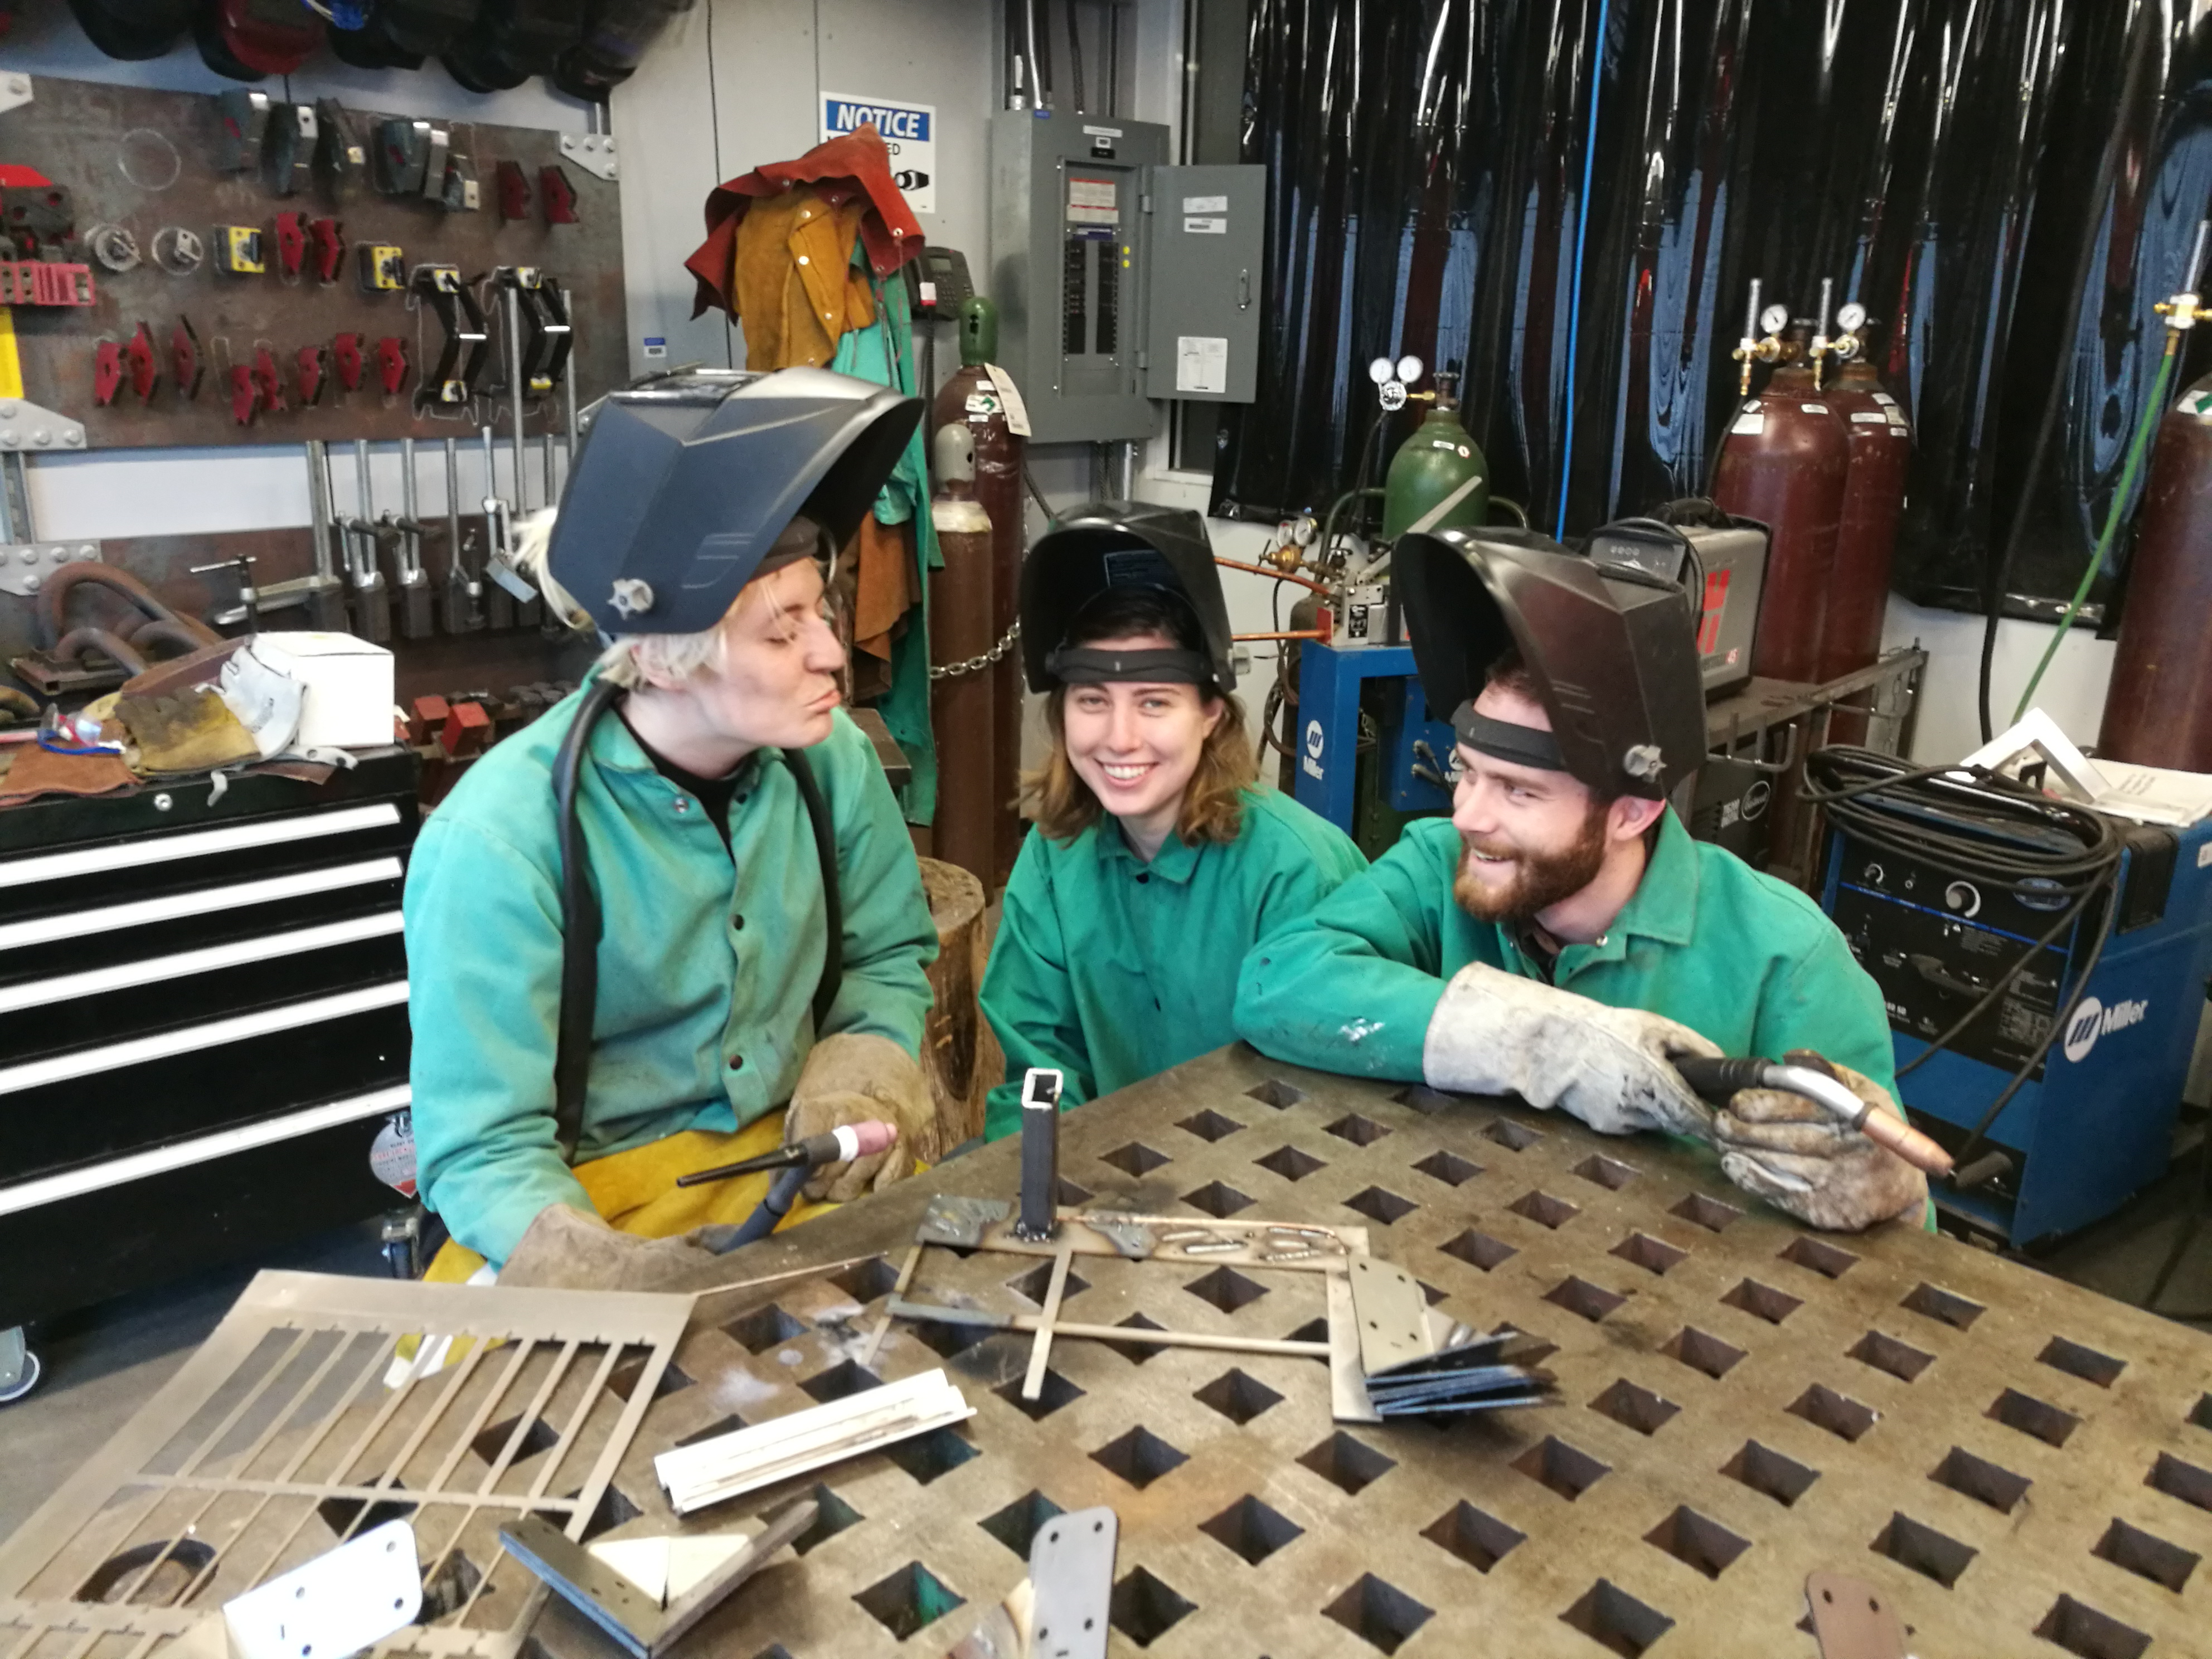 images/welding-two.jpg